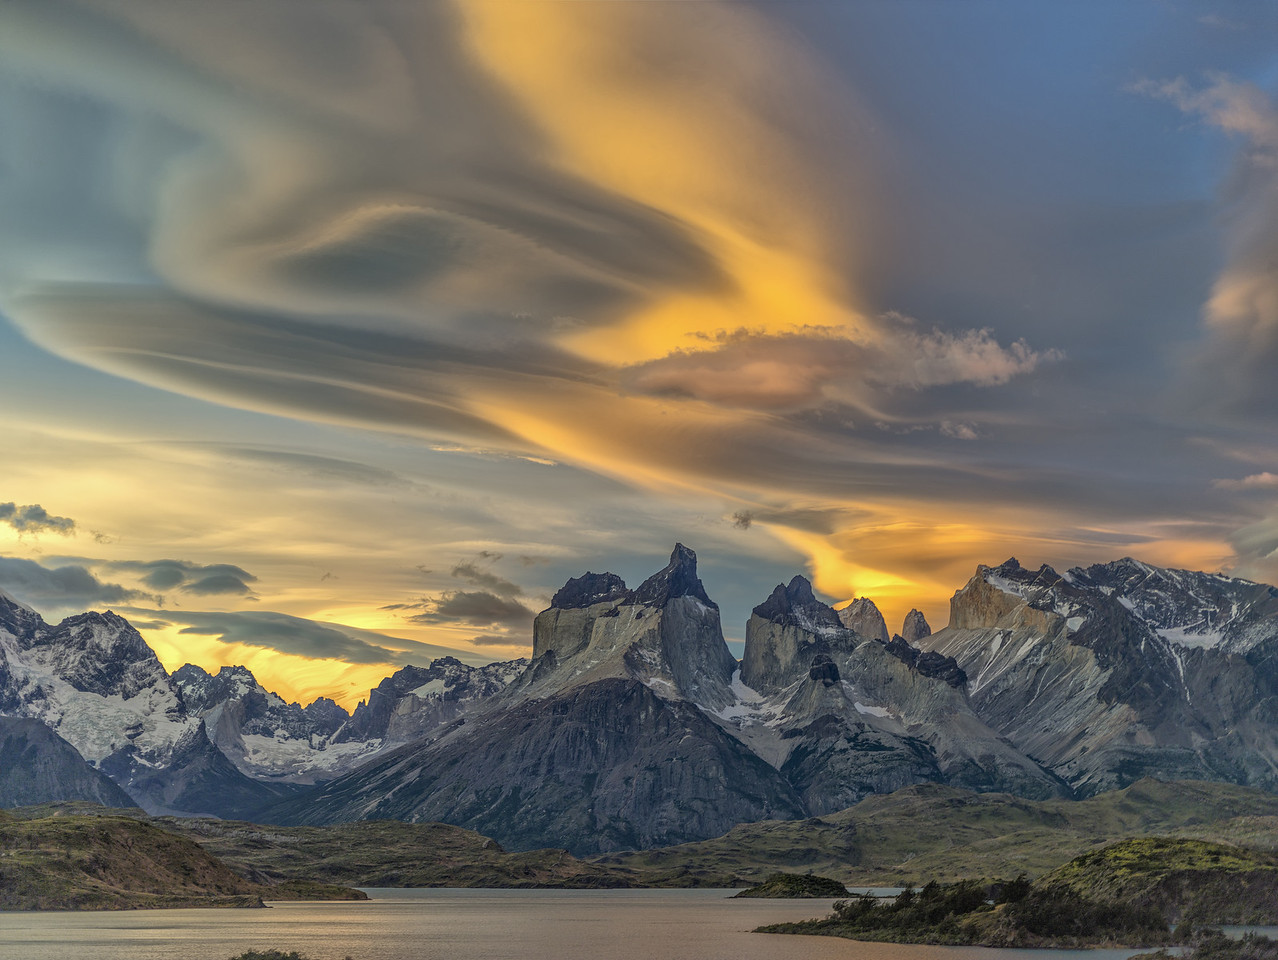 Sunset - Torres del Paine, Patagonia, Chile